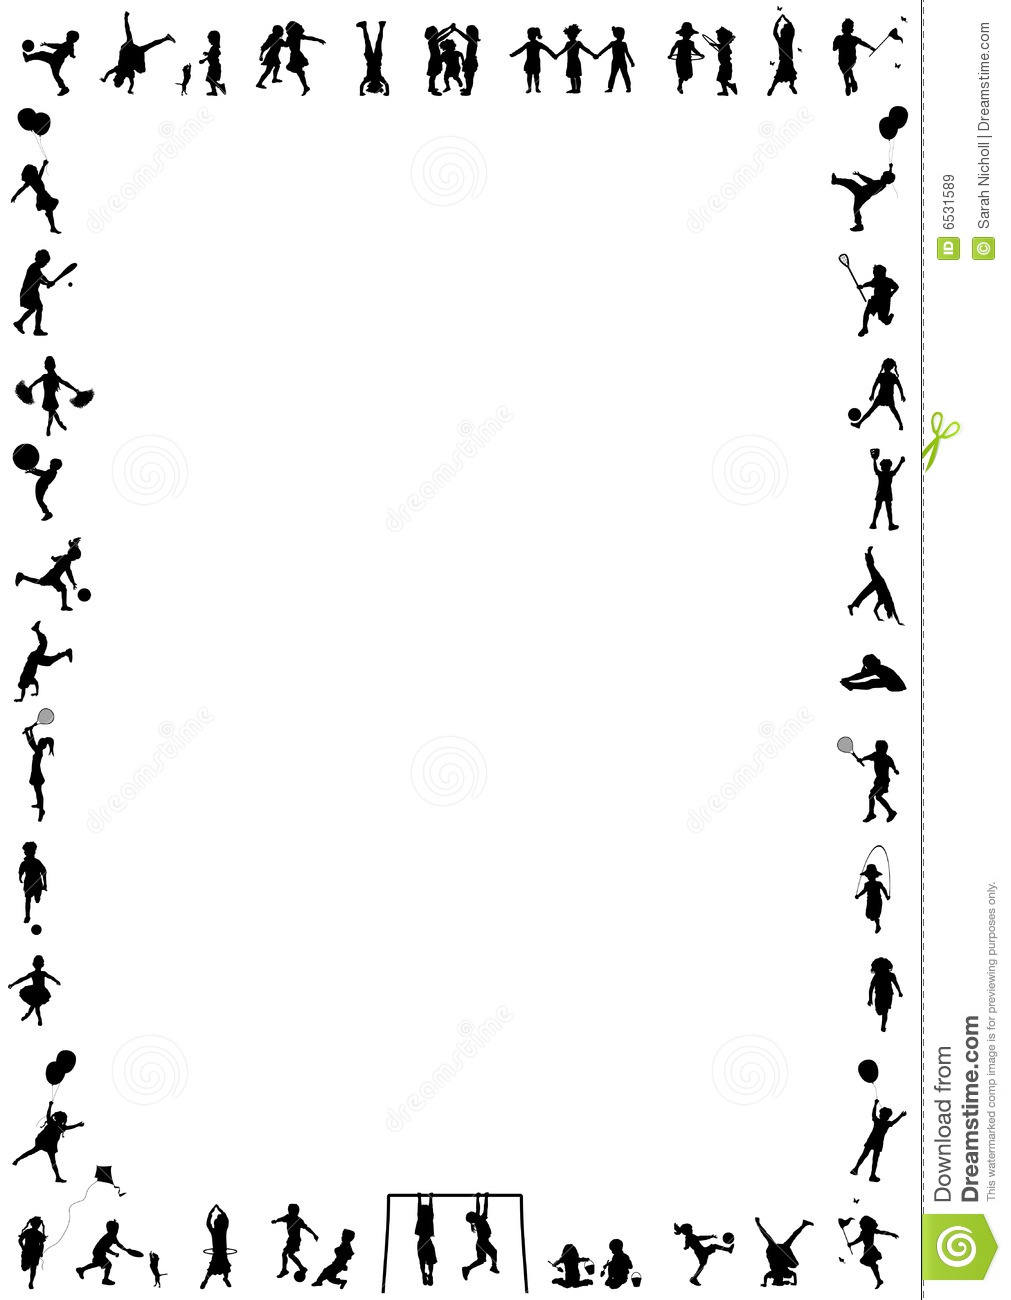 People border clipart banner royalty free library Exercise borders clip art - ClipartFest banner royalty free library